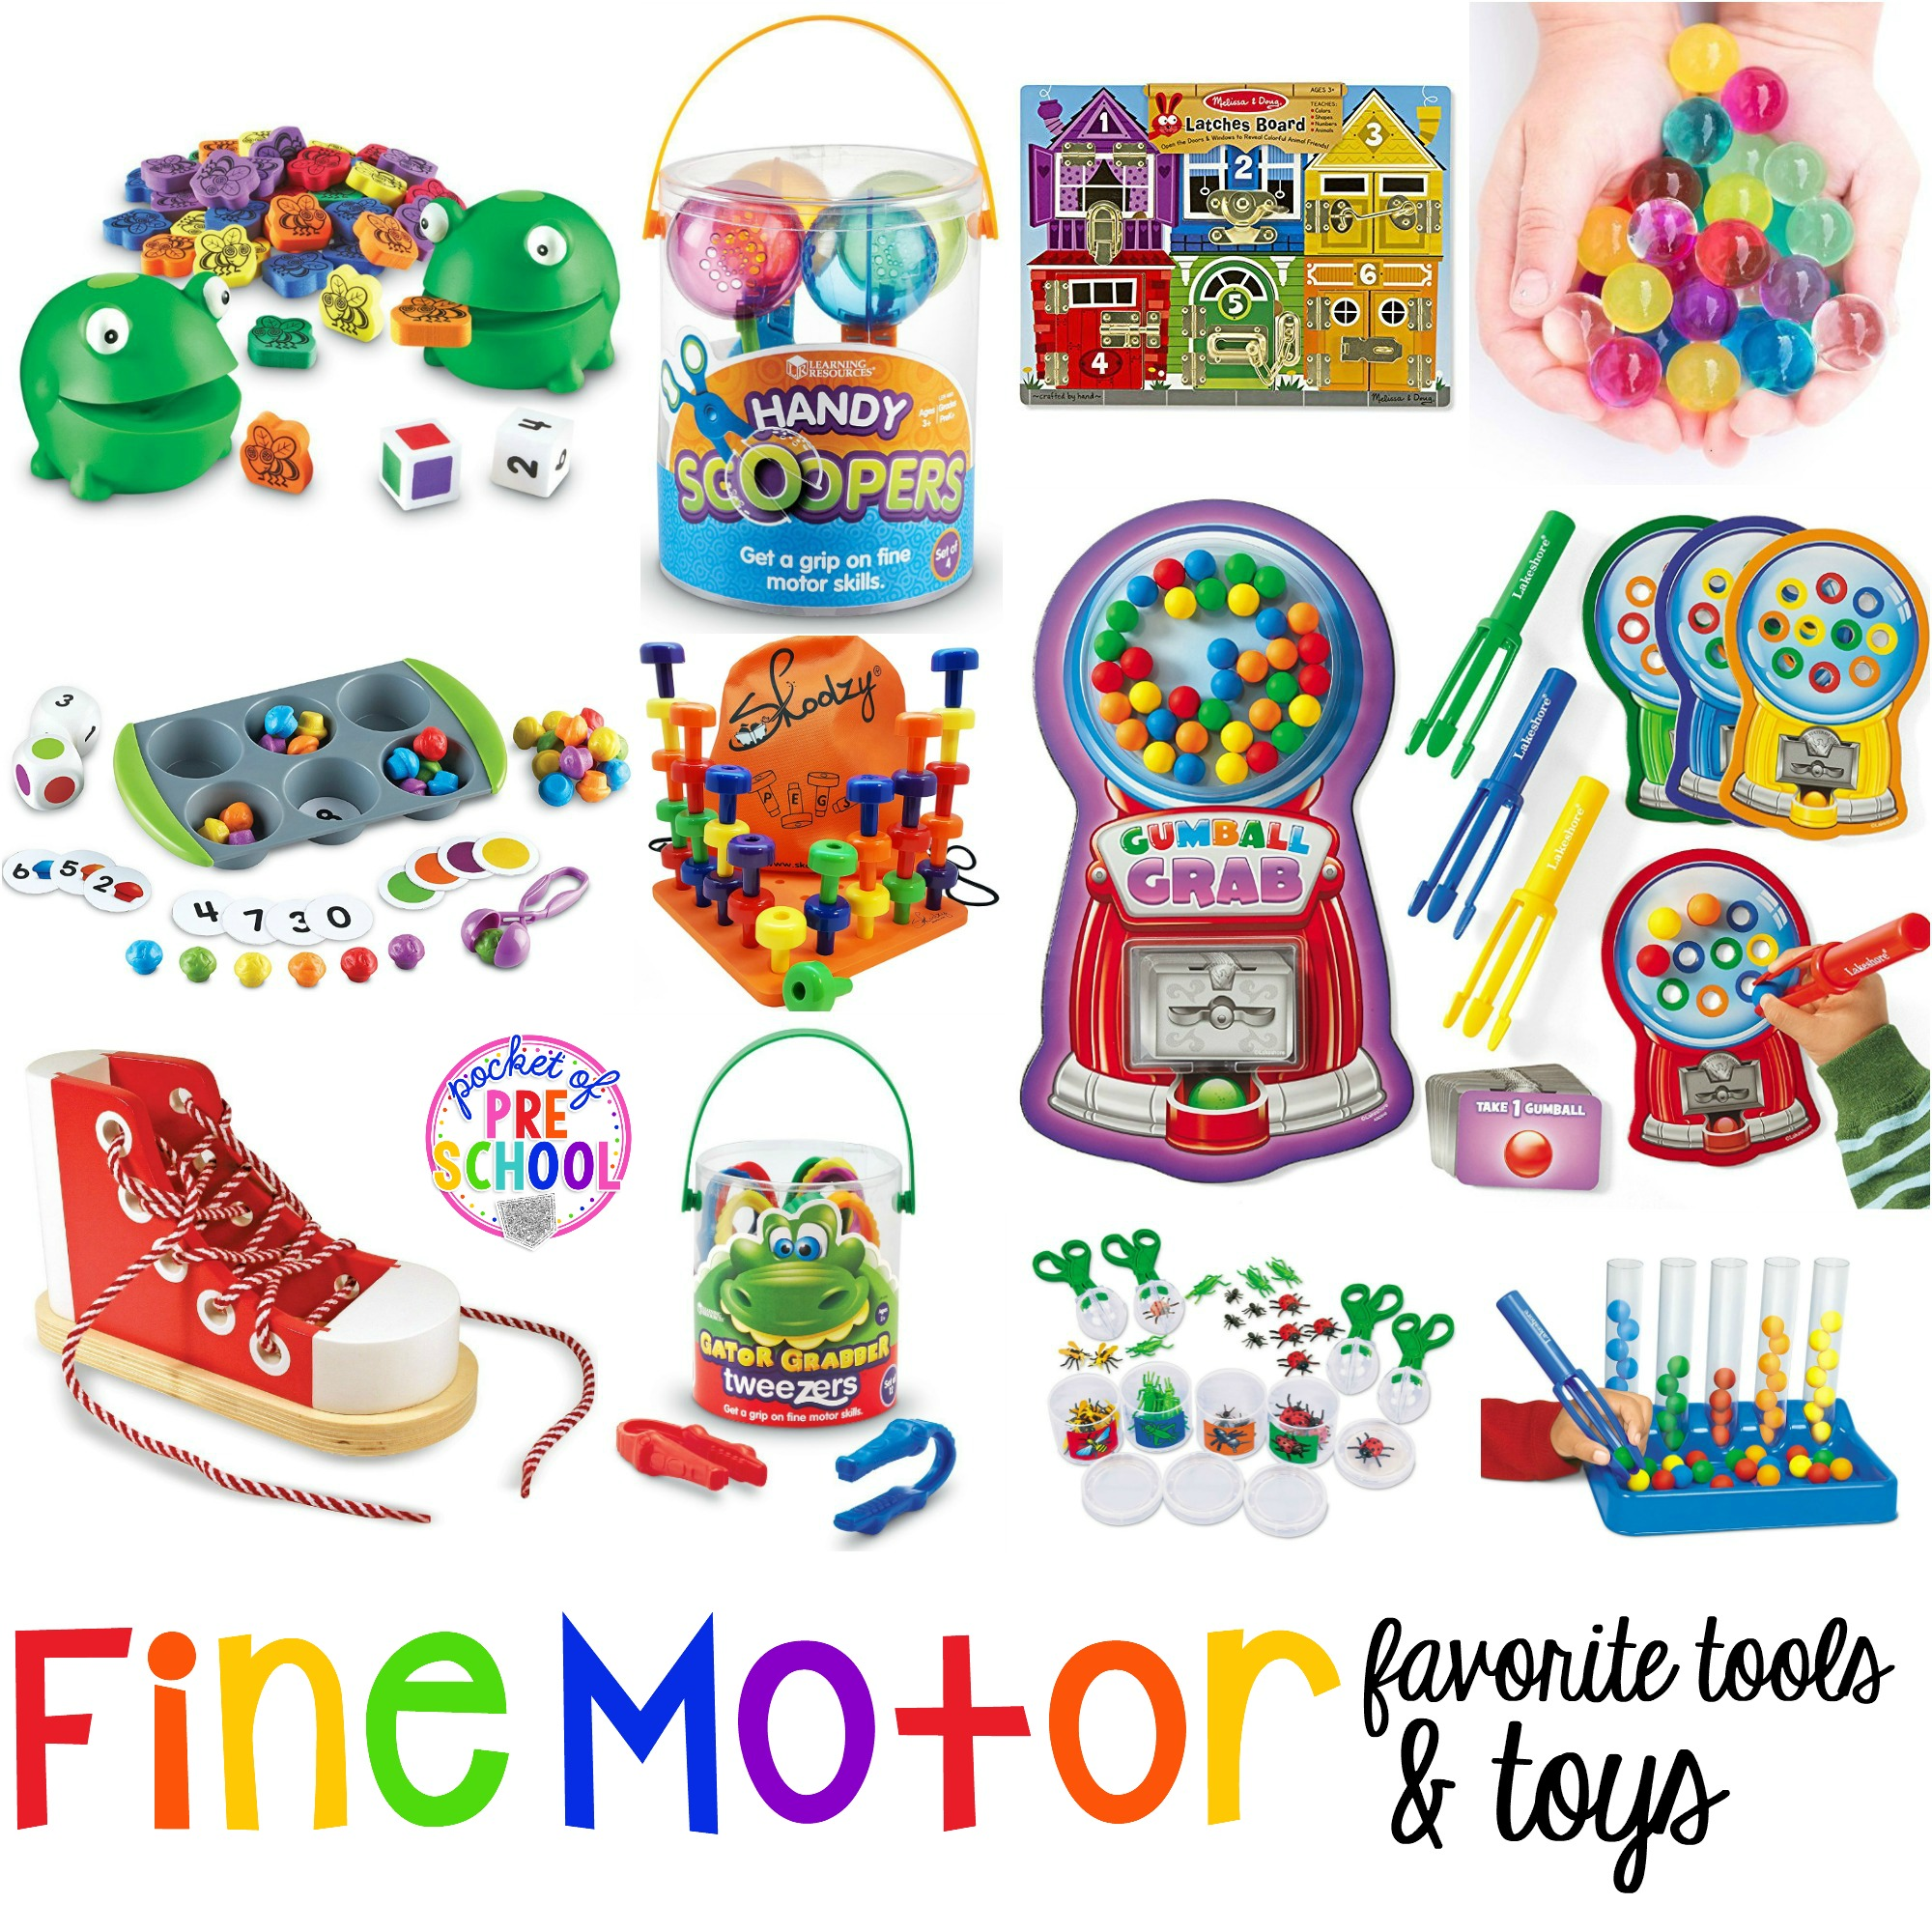 Toys starting with k clipart image transparent stock Favorite Fine Motor Tools & Toys for Preschool ... image transparent stock